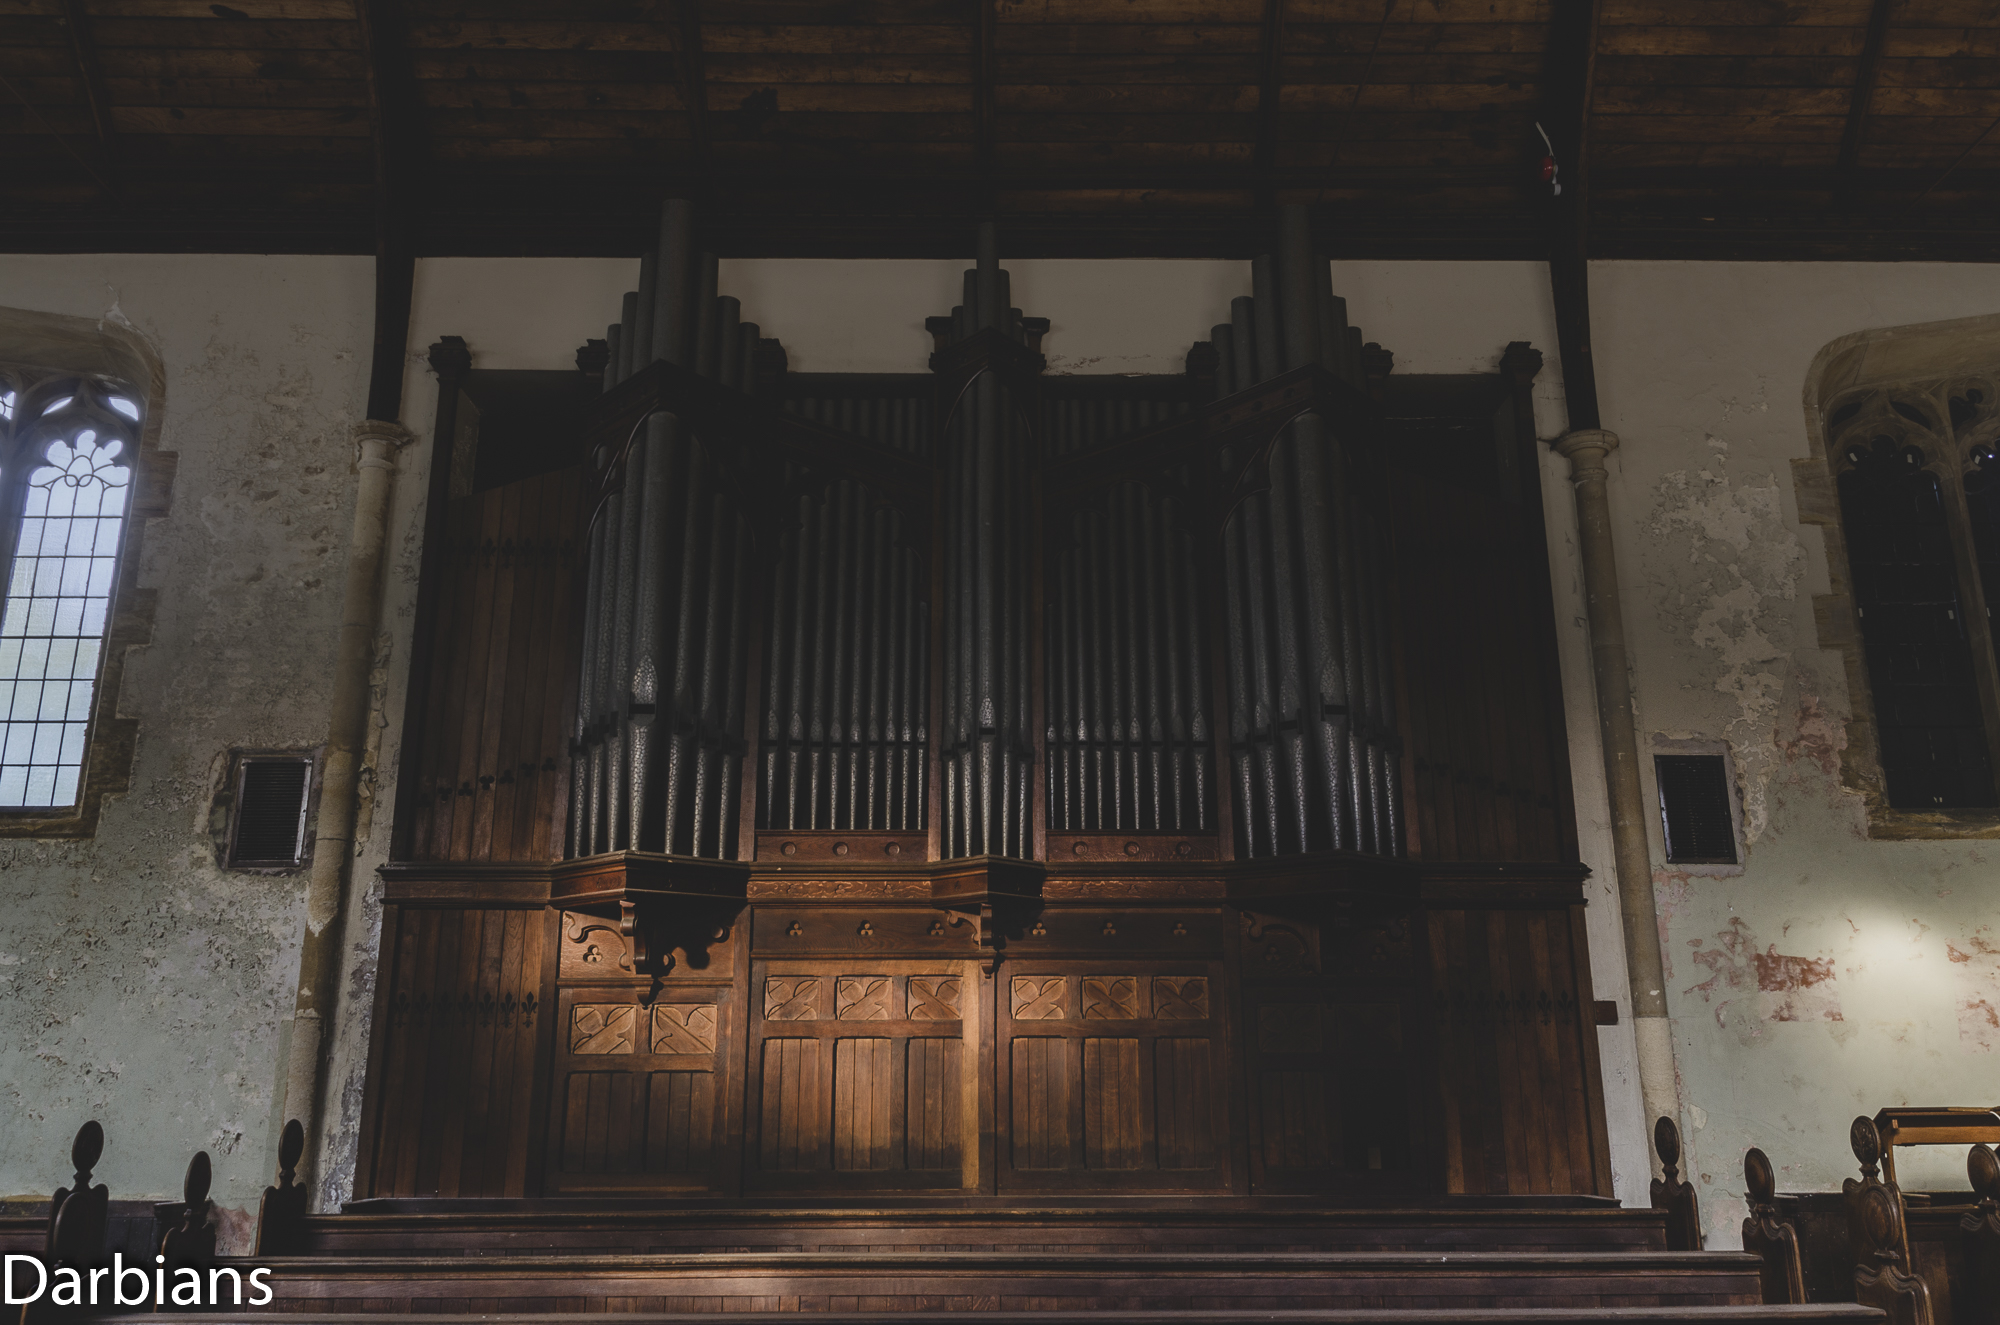 The large organ pipes in the chapel.